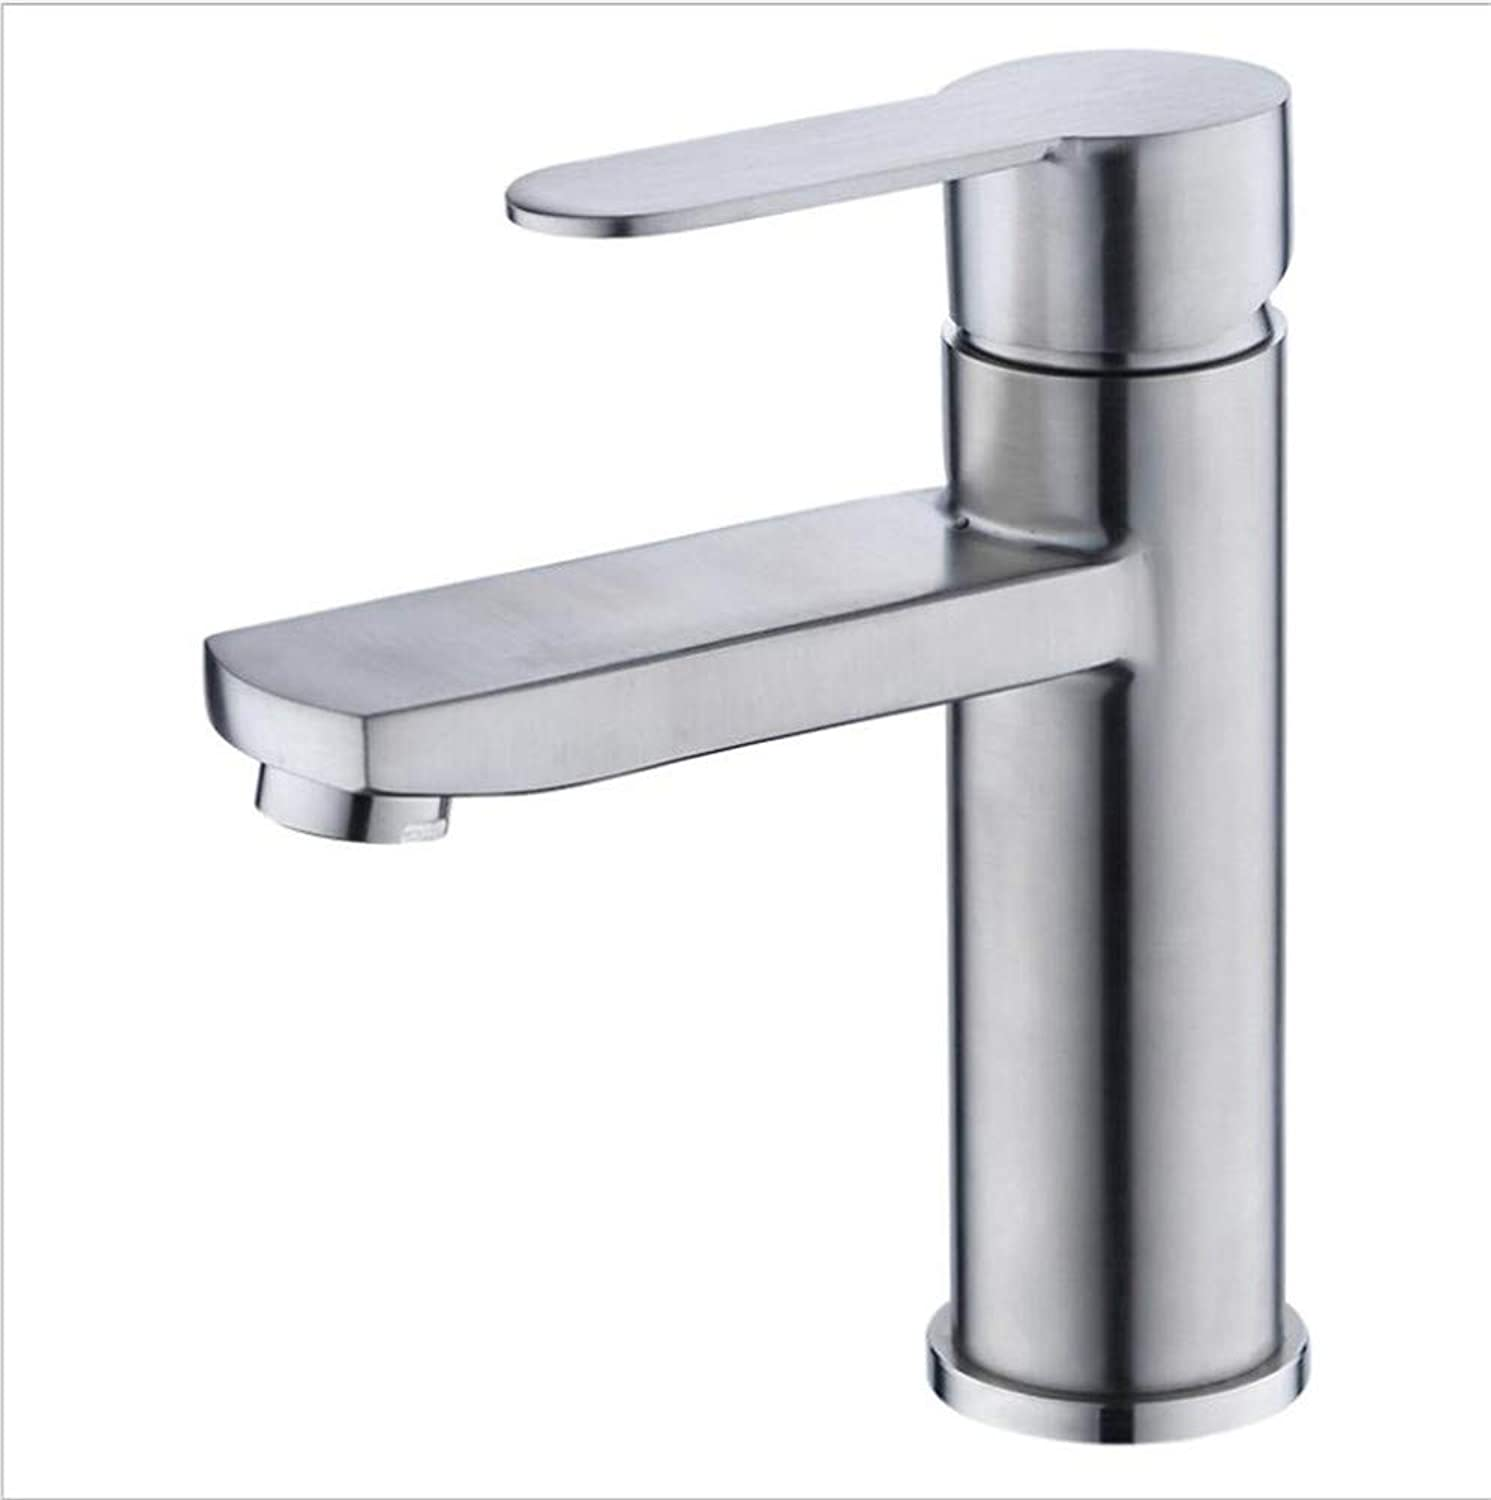 Bathroom Sink Basin Lever Mixer 304 Stainless Square Basin